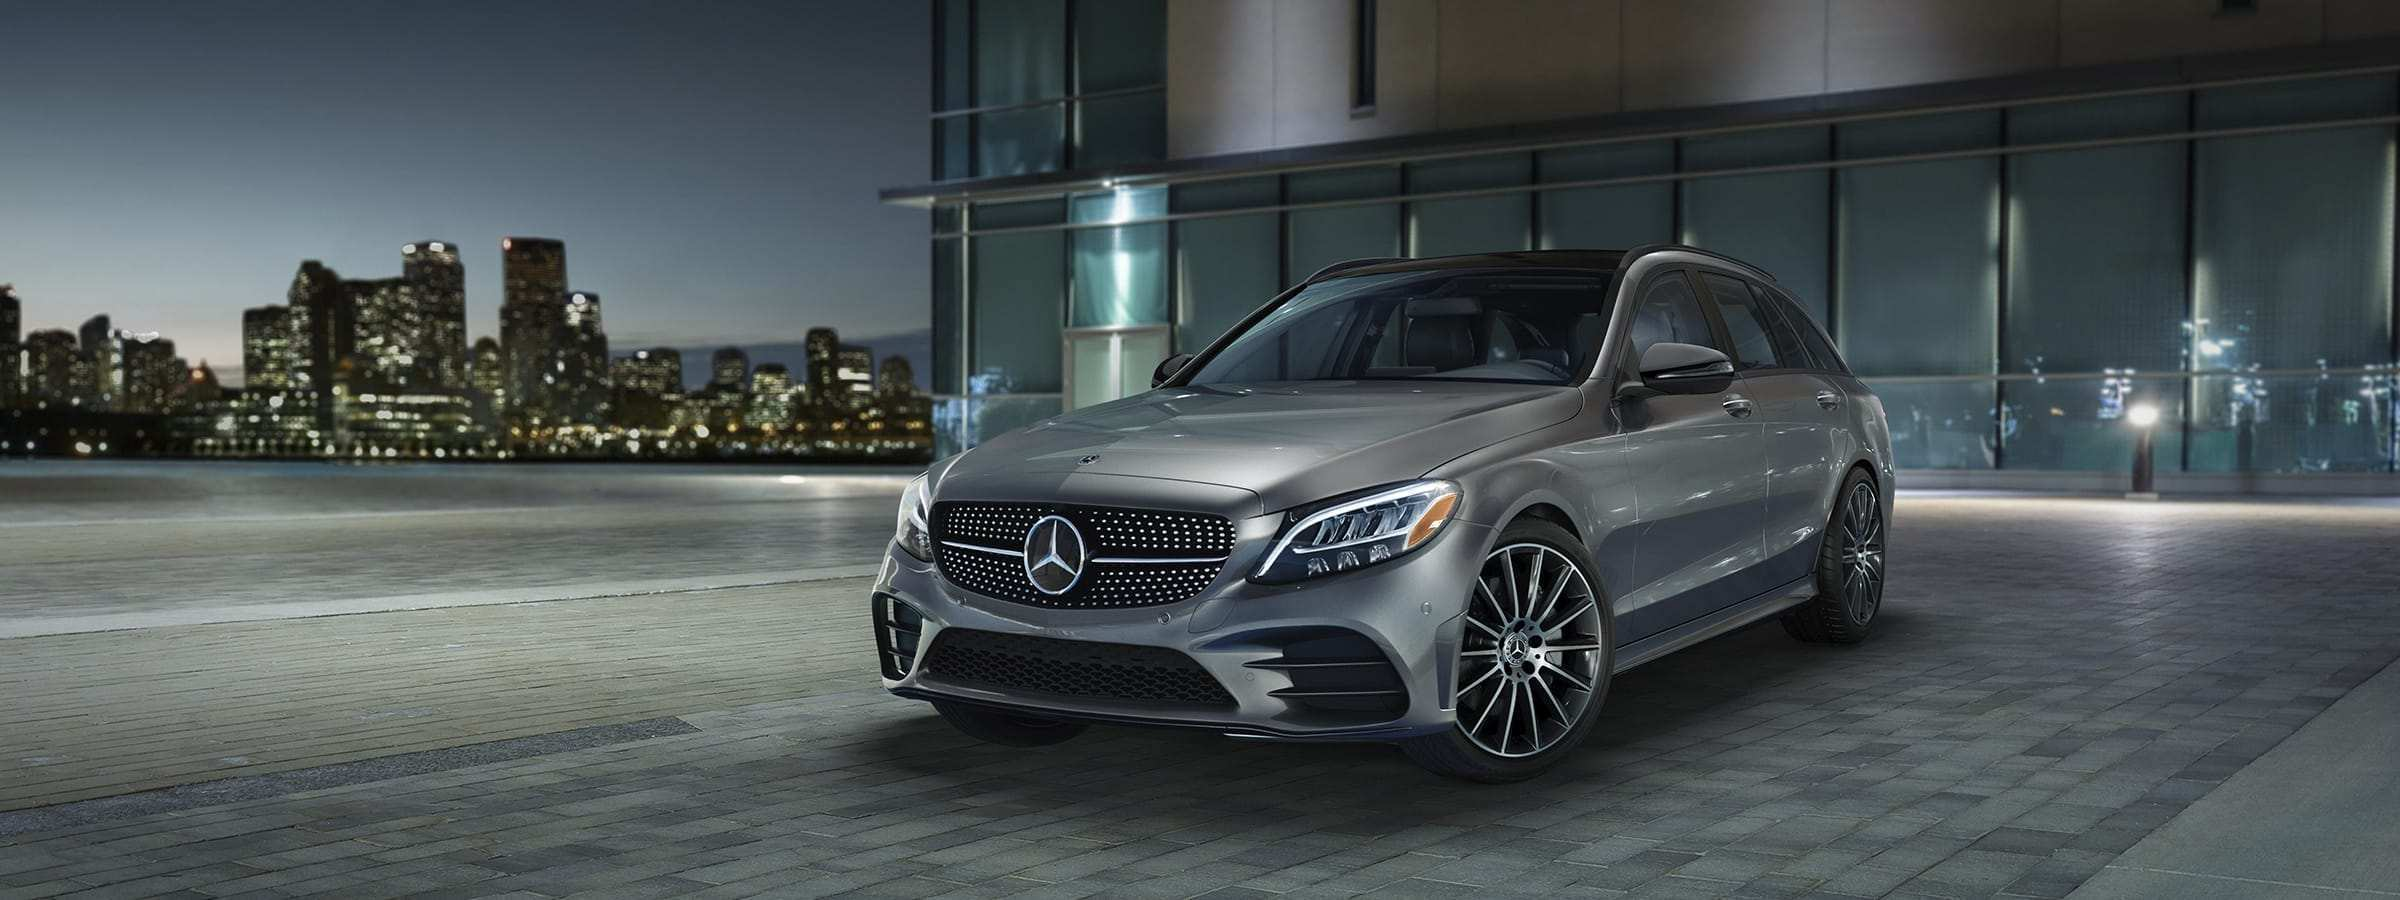 95 All New Mercedes 2019 Wagon Overview with Mercedes 2019 Wagon